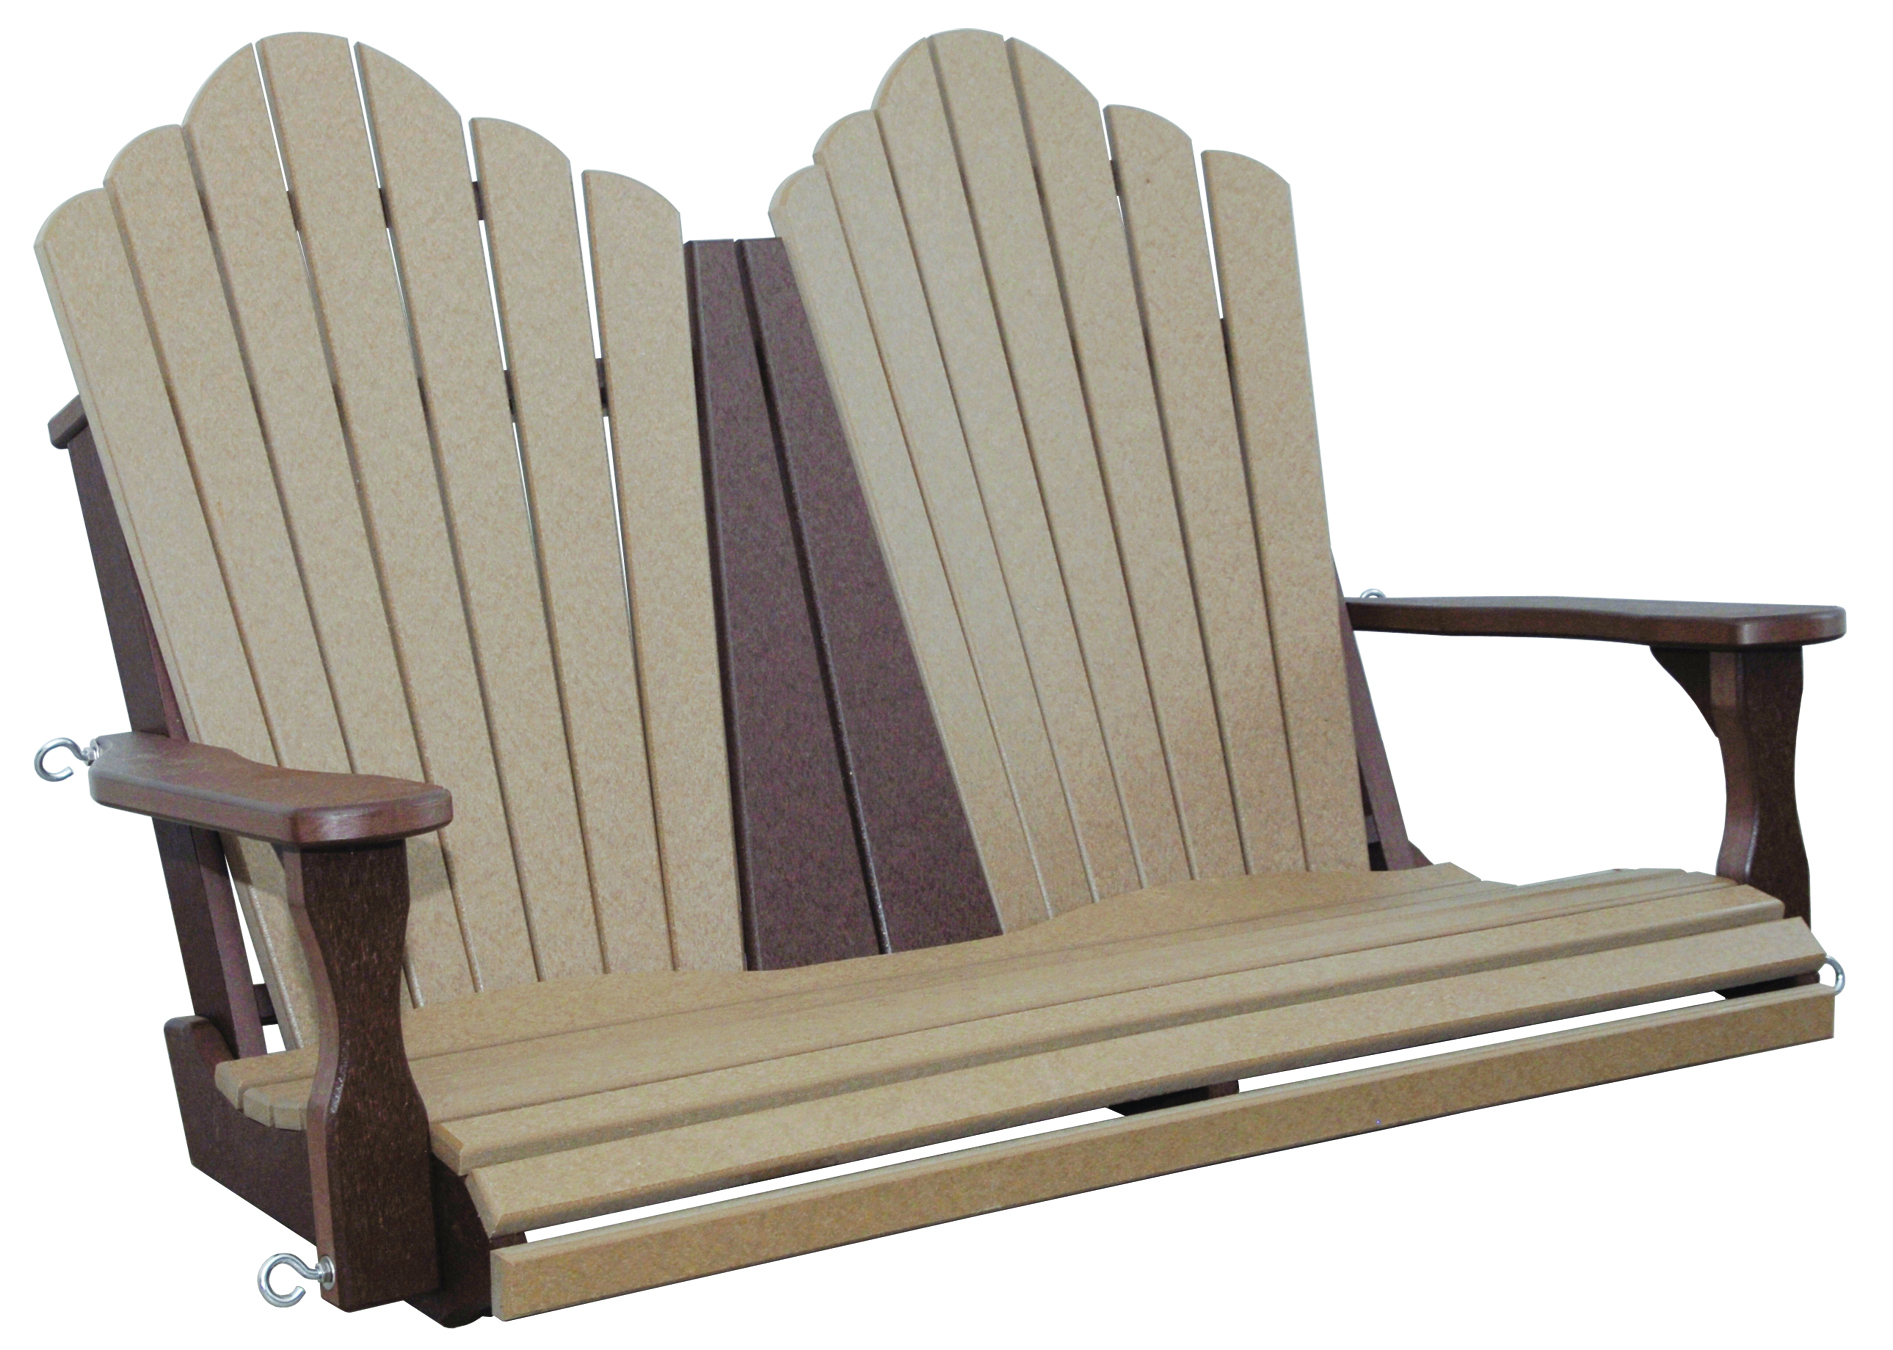 porch swing for outdoor use in Slippery Rock, PA